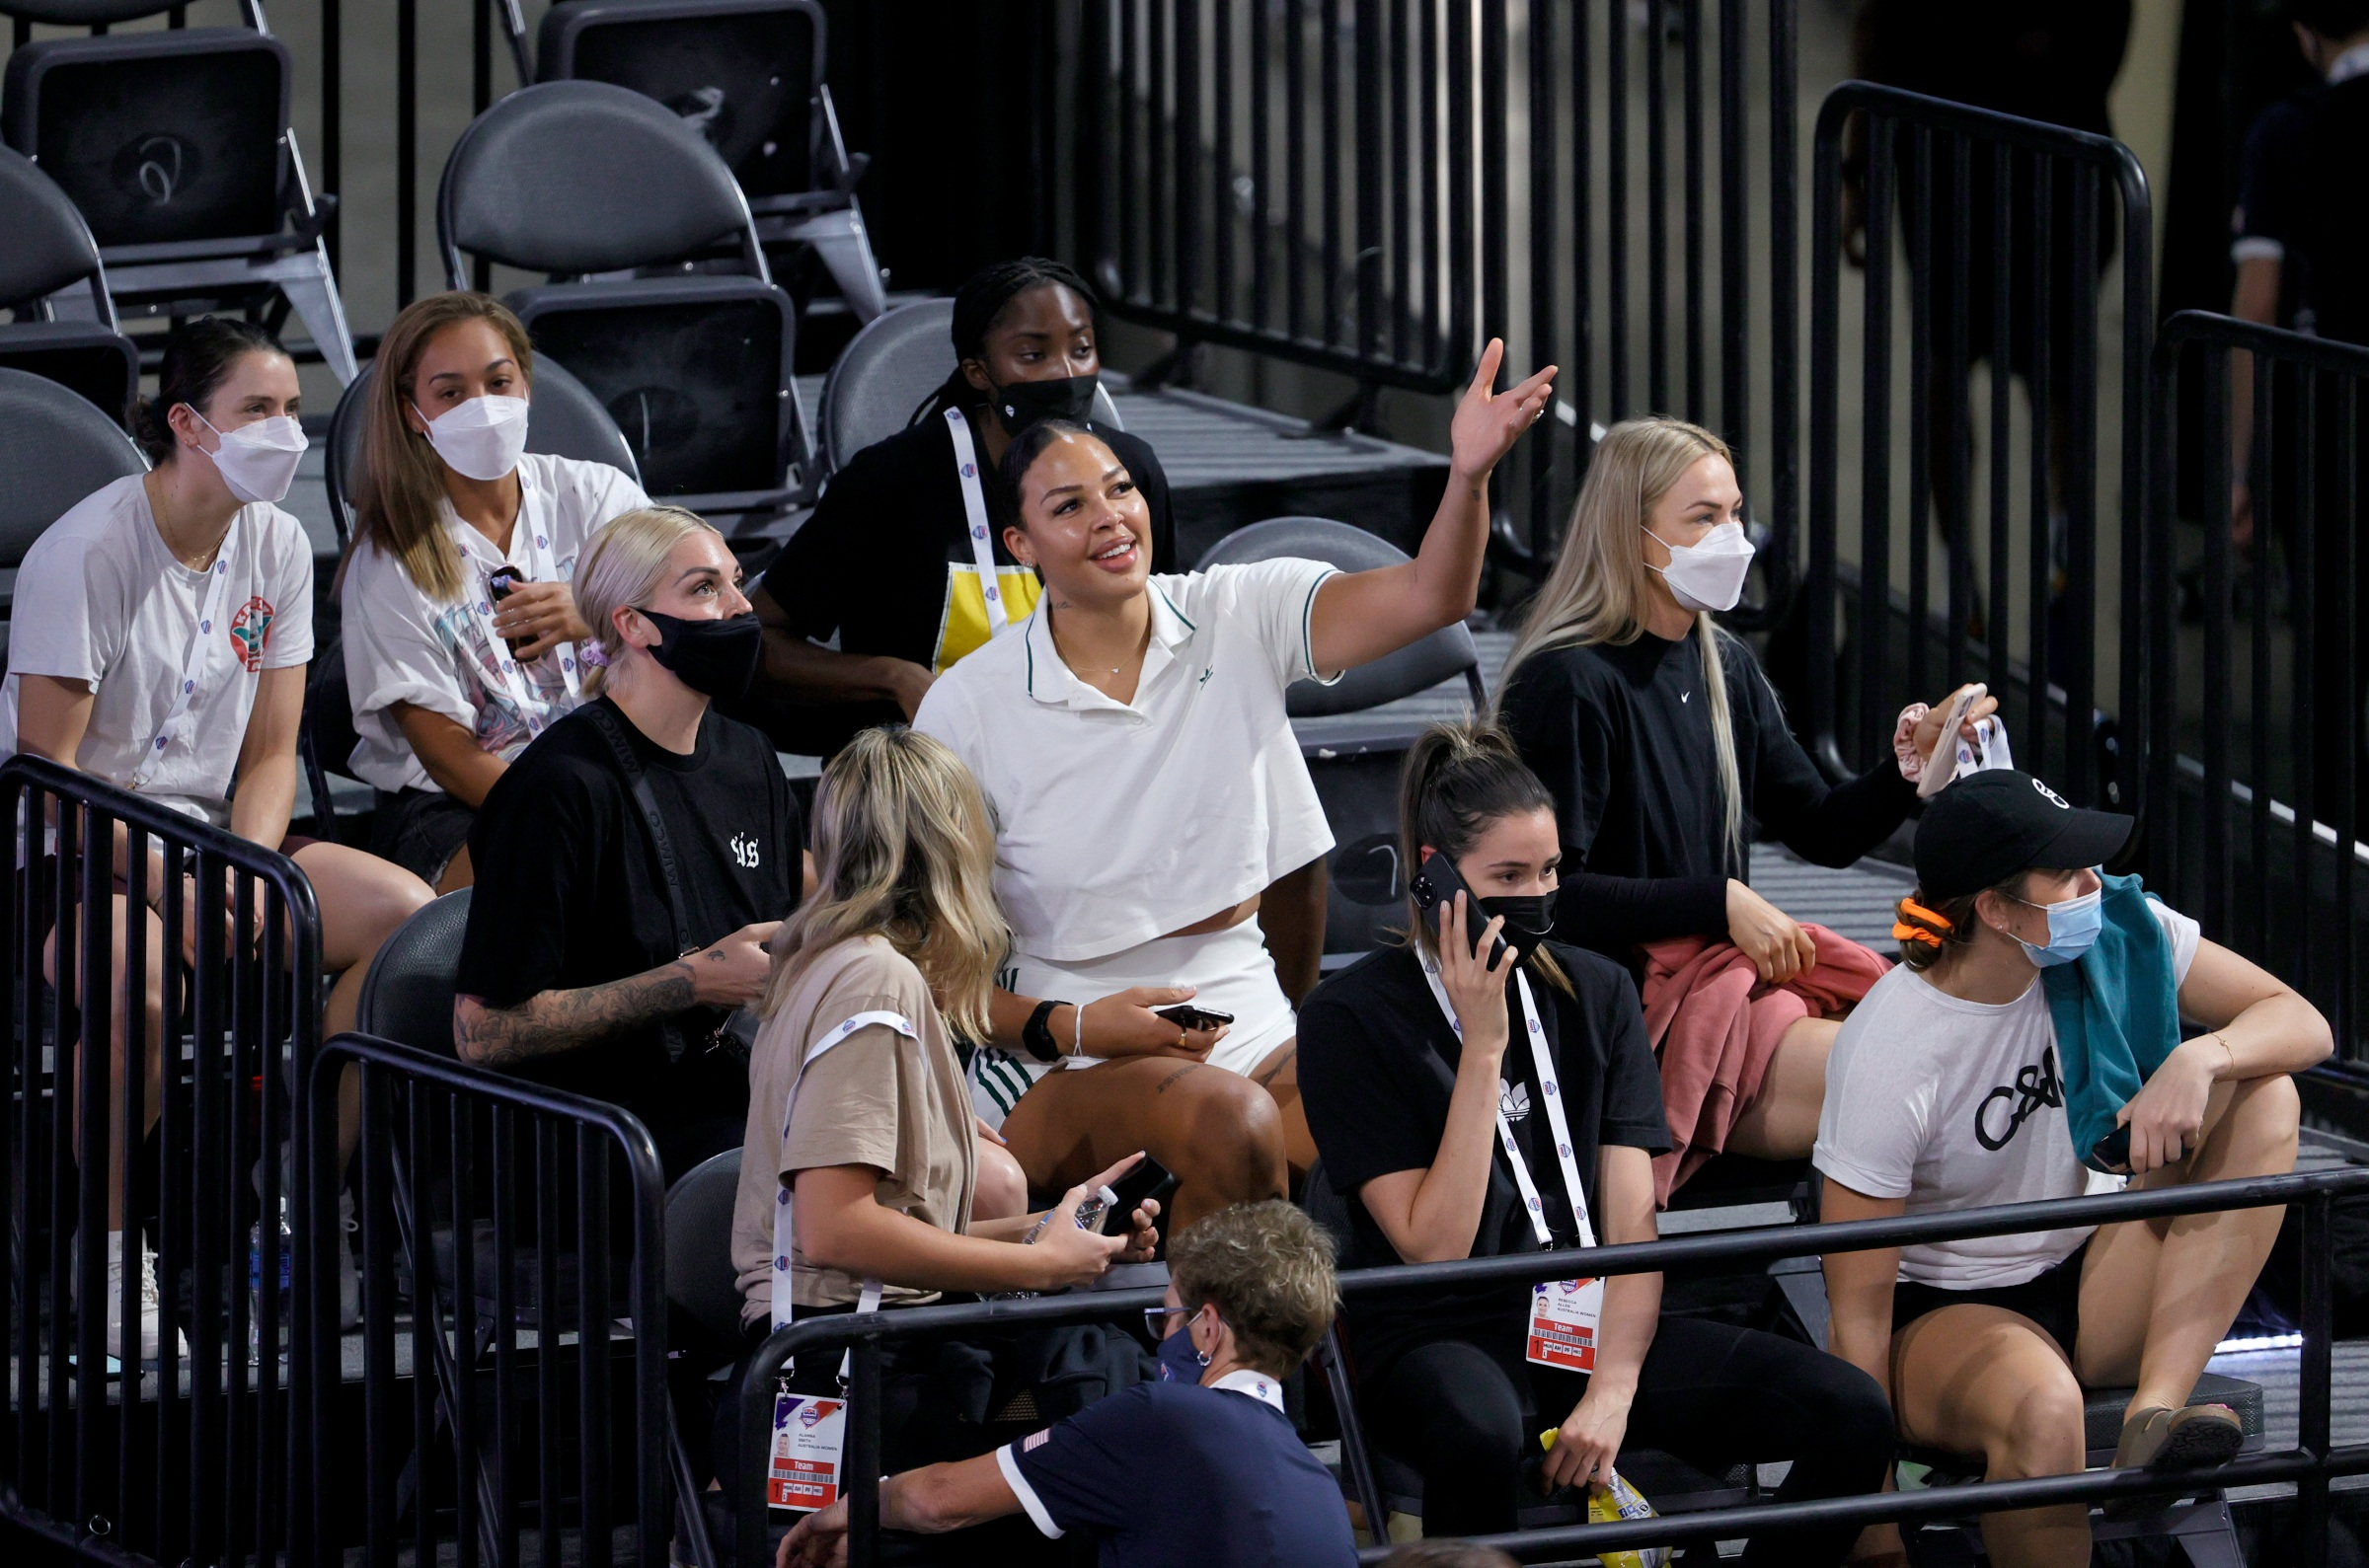 Liz Cambage (C) of the Las Vegas Aces attends an exhibition game between Nigeria and the United States at Michelob ULTRA Arena ahead of the Tokyo Olympic Games on July 10, 2021 in Las Vegas, Nevada.